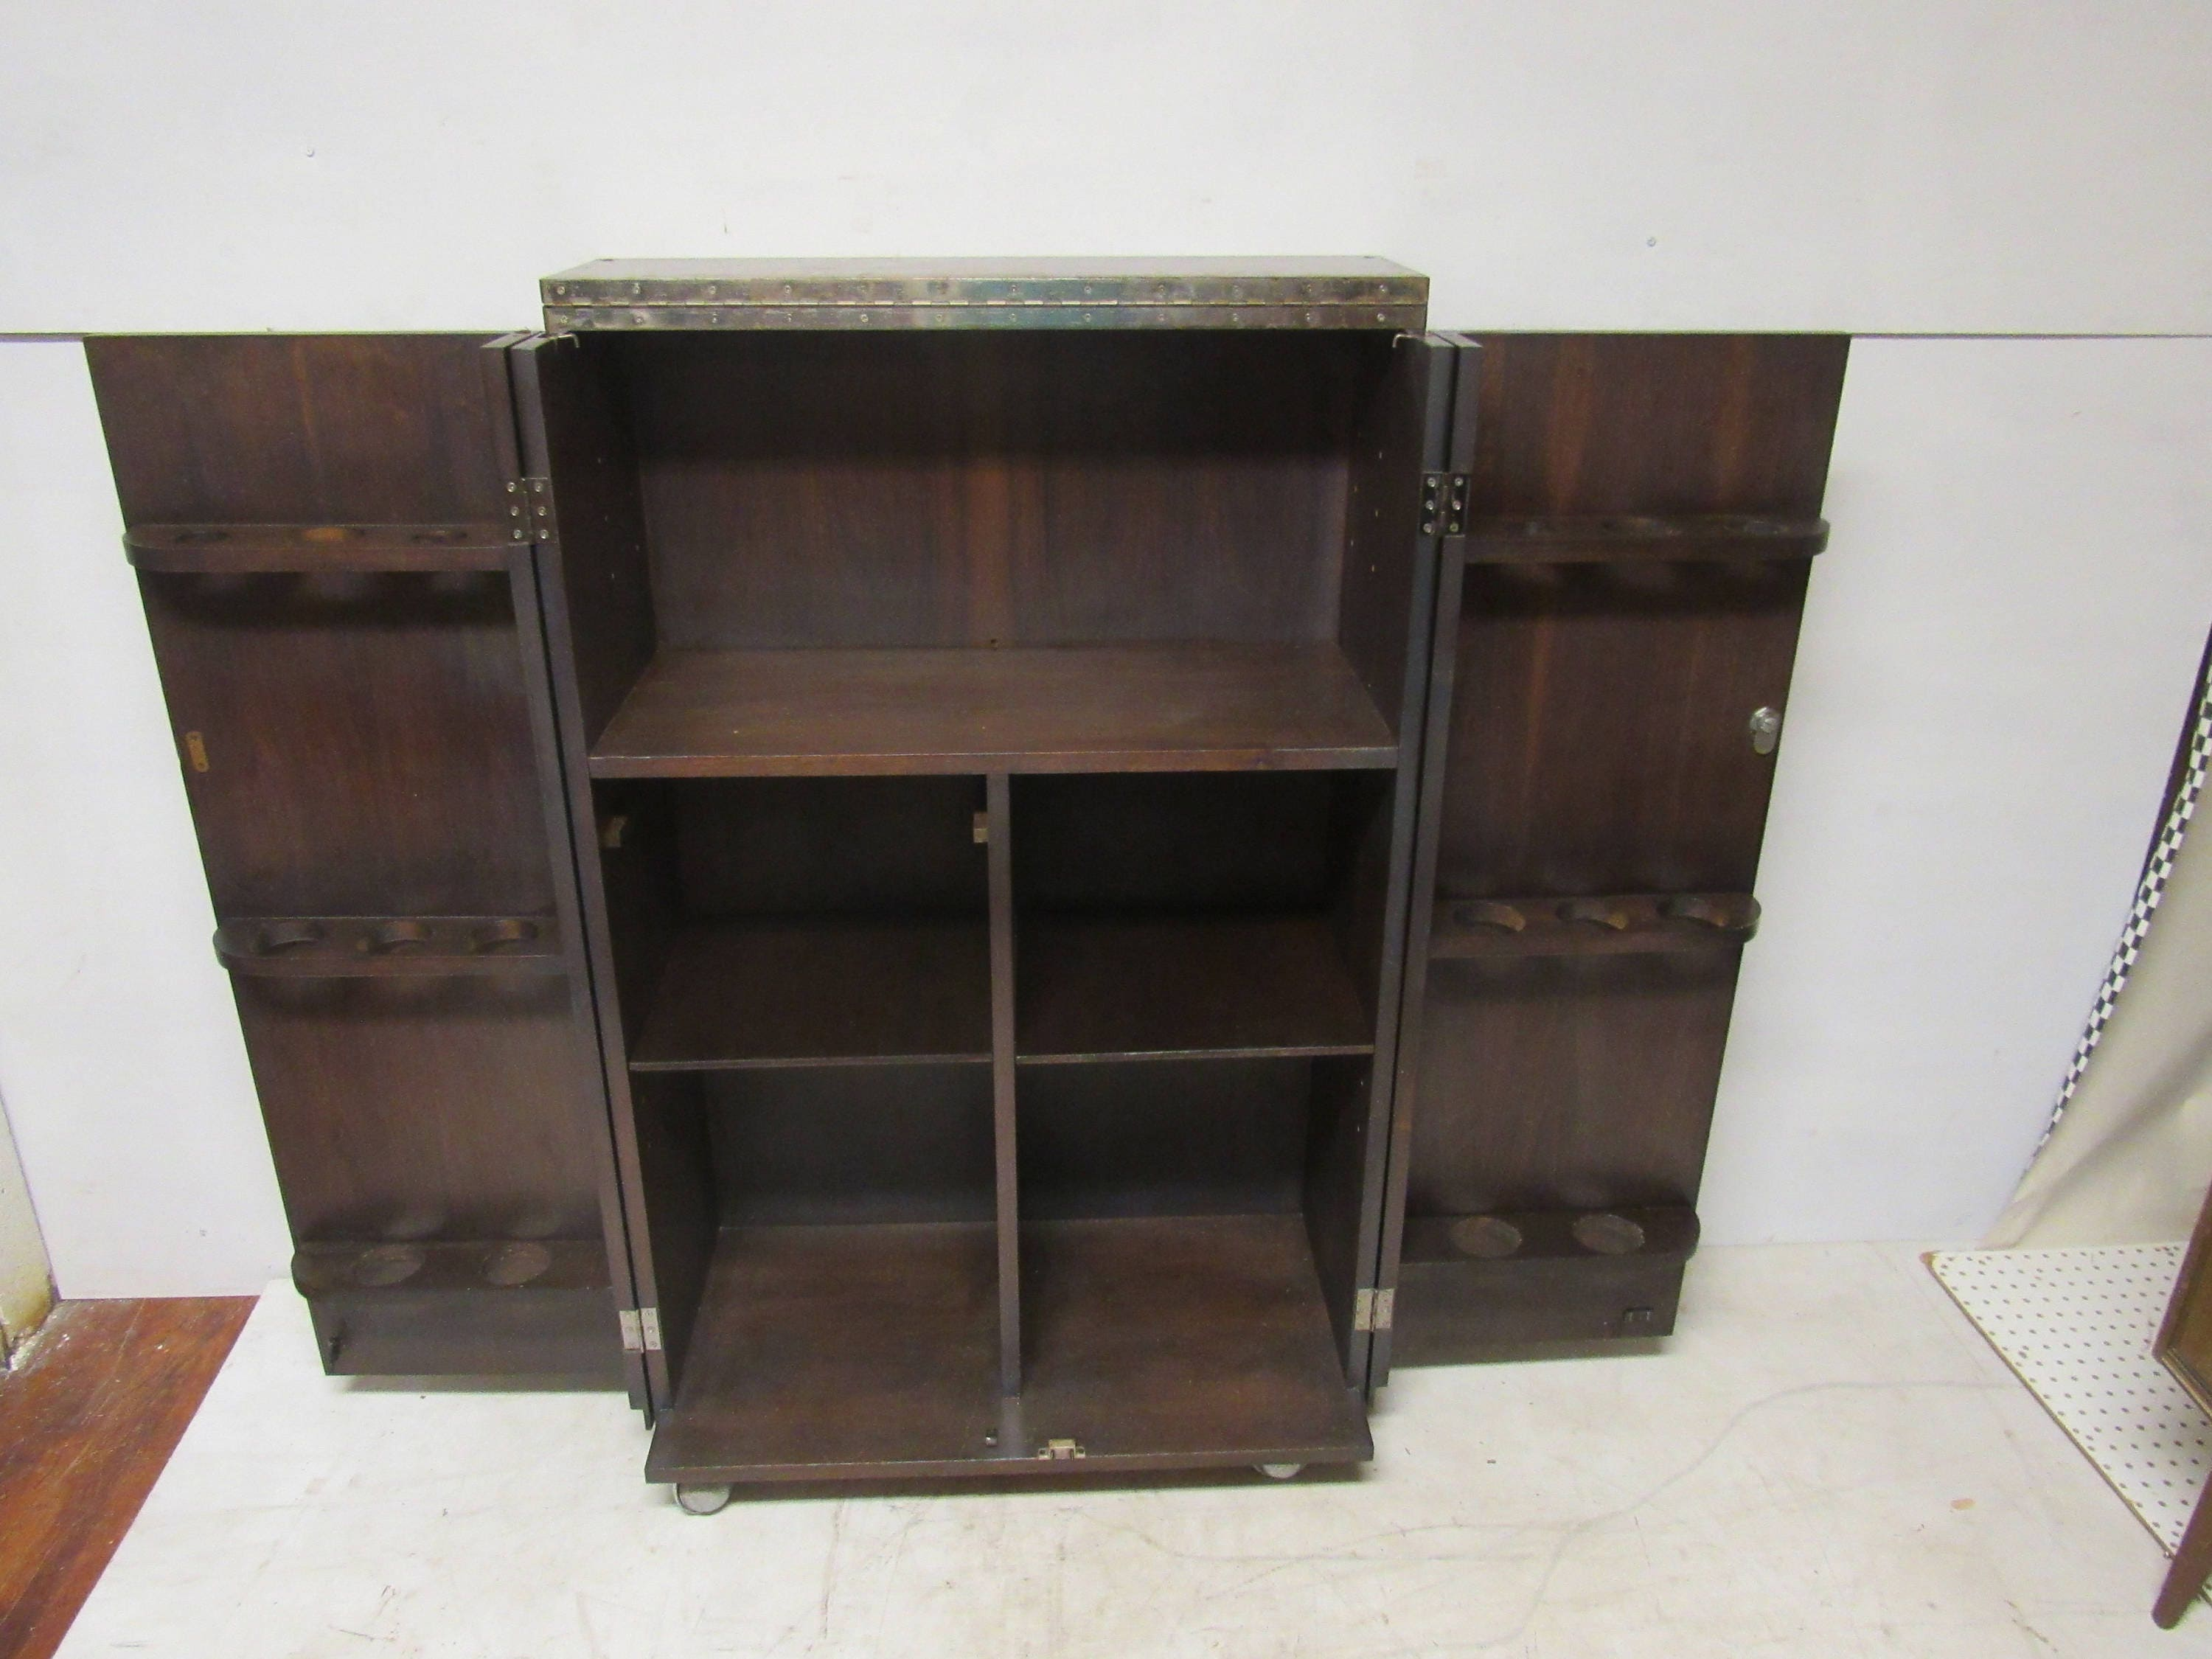 Fold Away Bar Cabinet. Gallery Photo Gallery Photo Gallery Photo ...